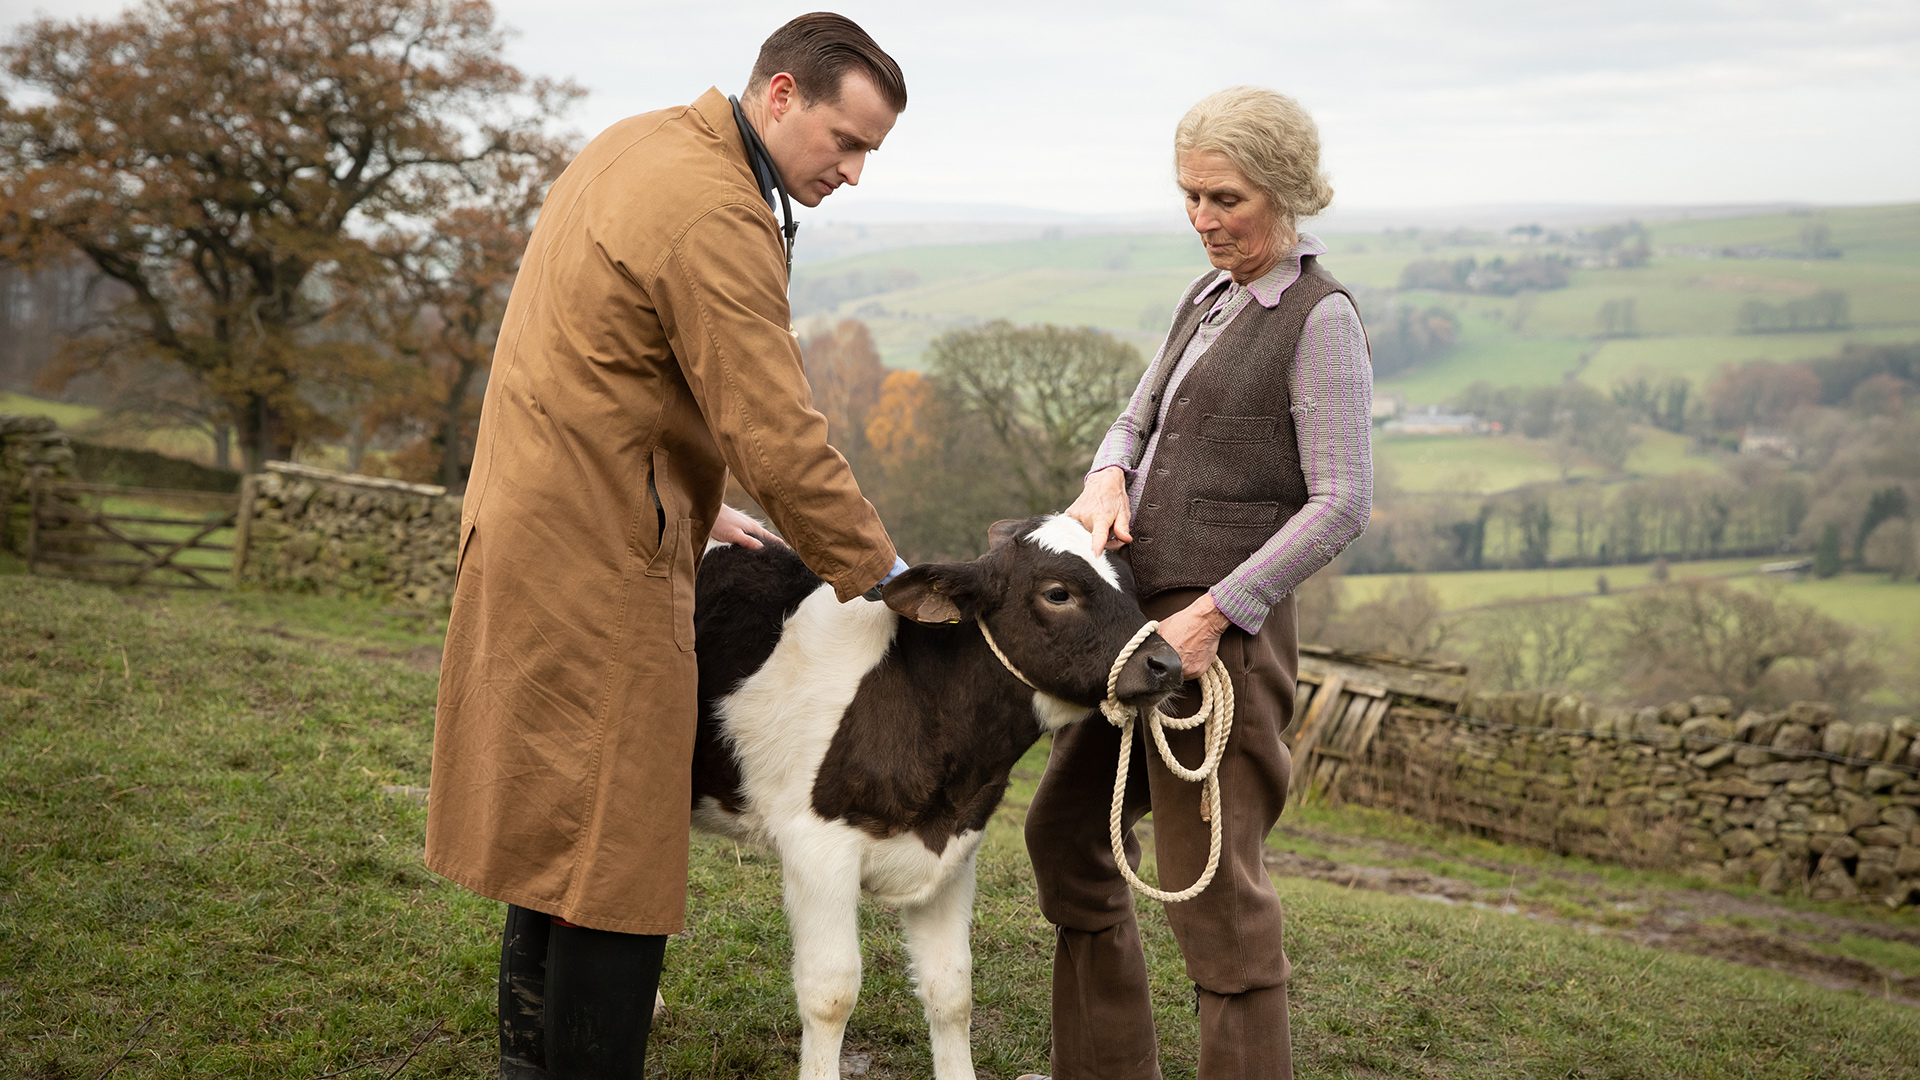 Samuel West as Siegfried Farnon with a client and a calf